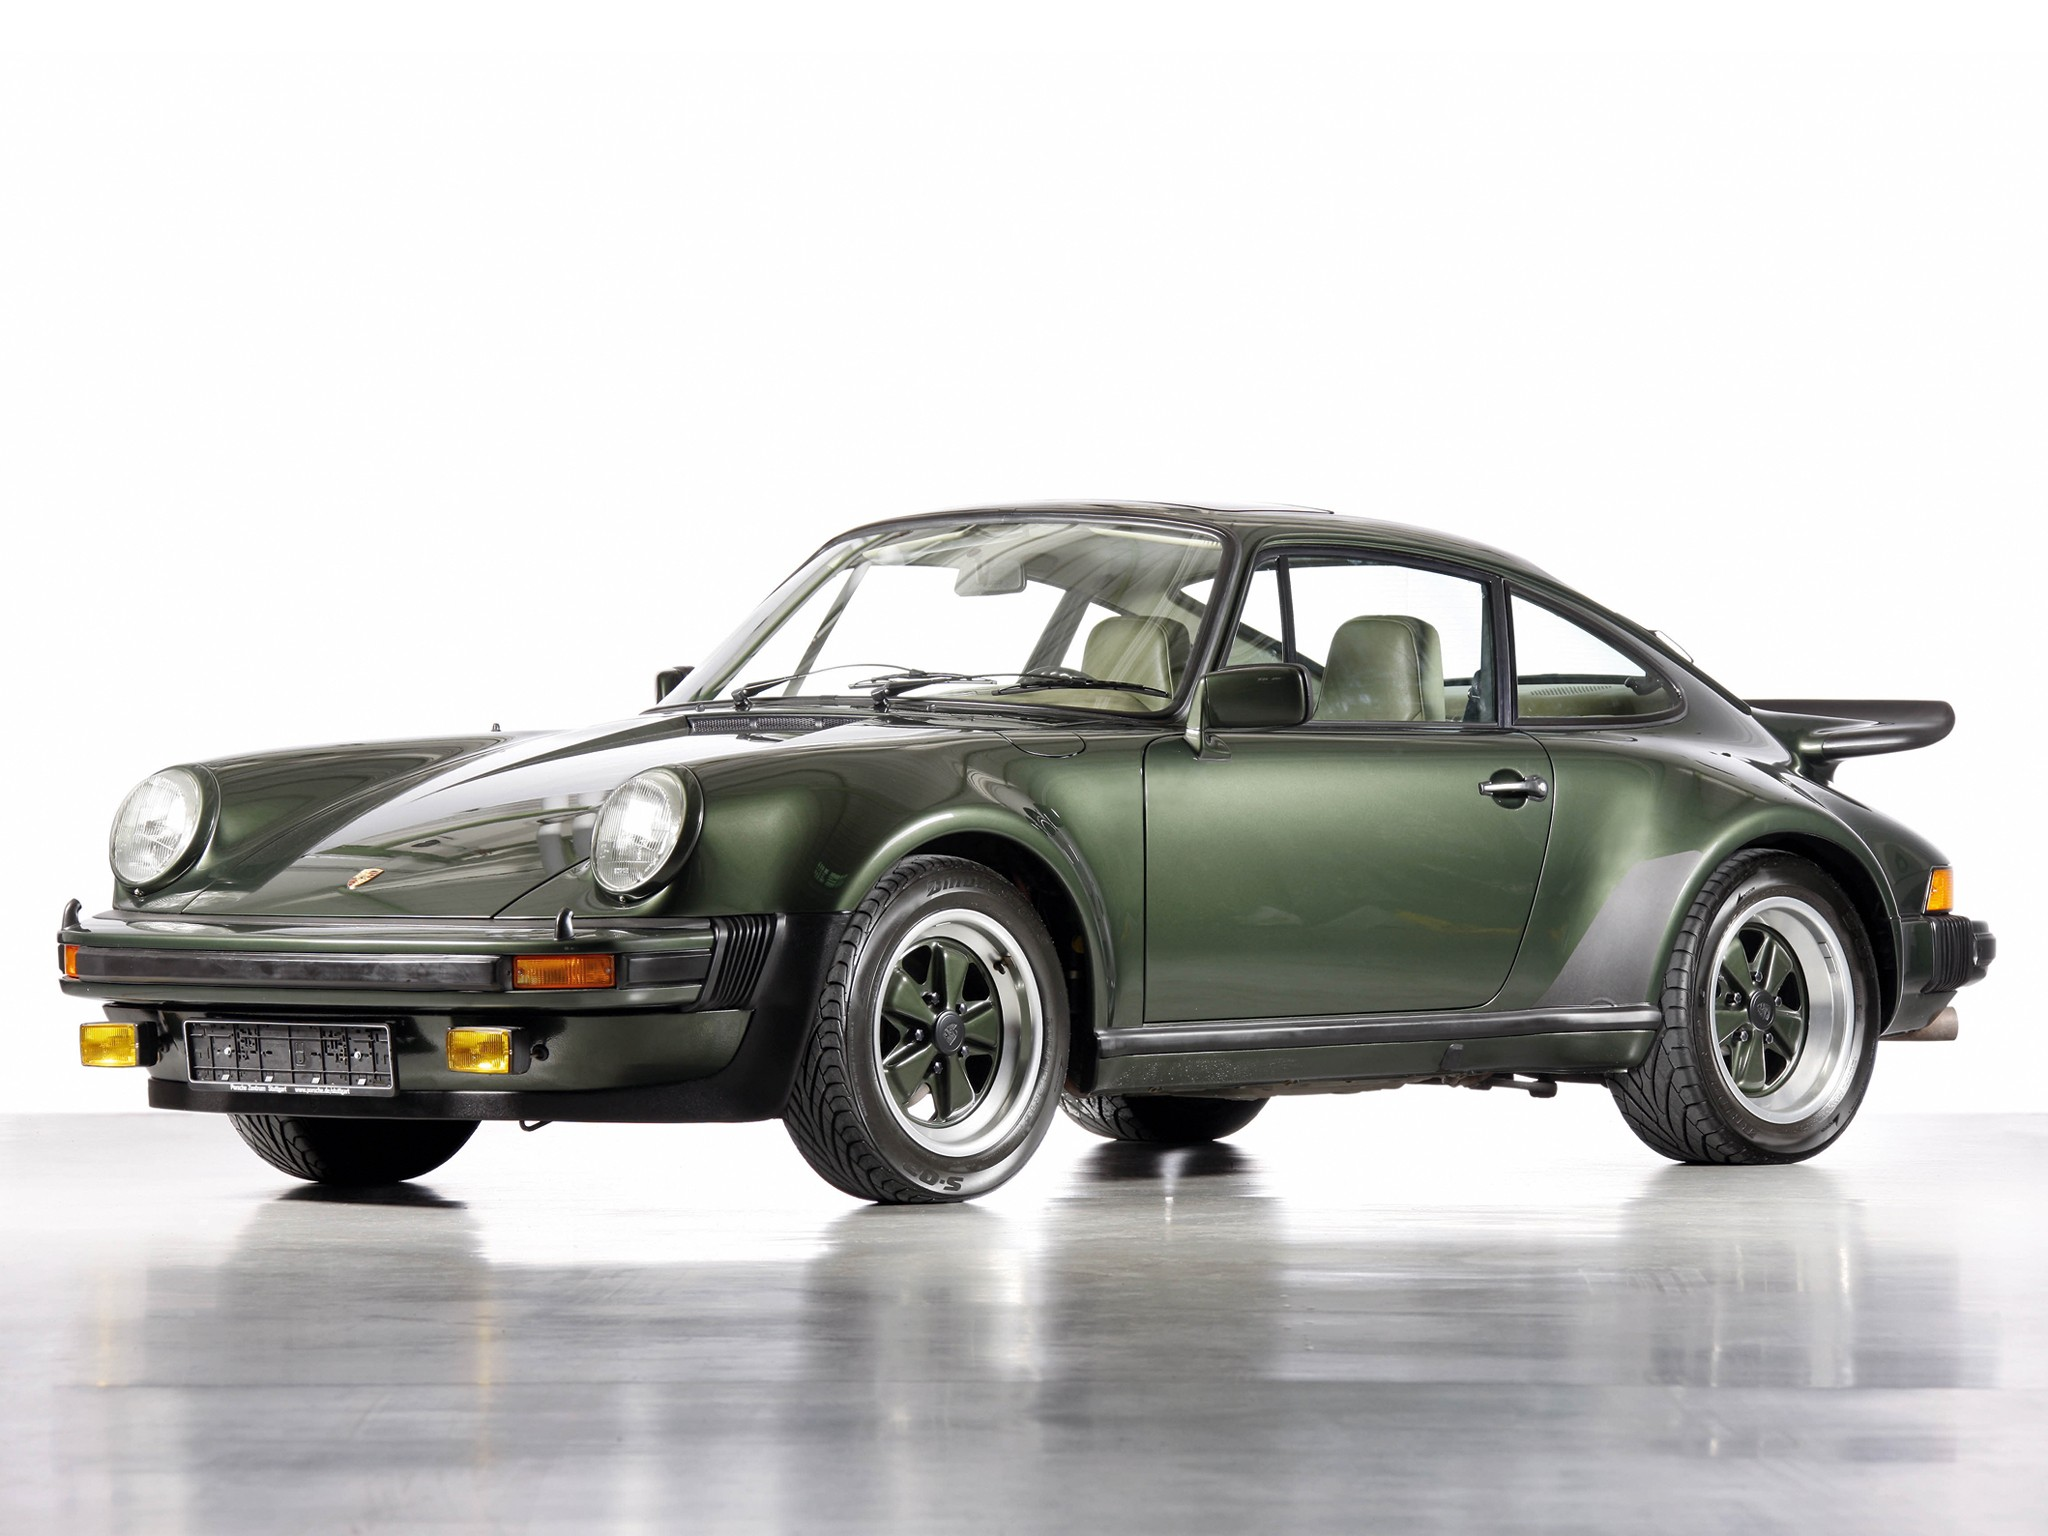 porsche 911 turbo 930 specs photos 1974 1975 1976. Black Bedroom Furniture Sets. Home Design Ideas